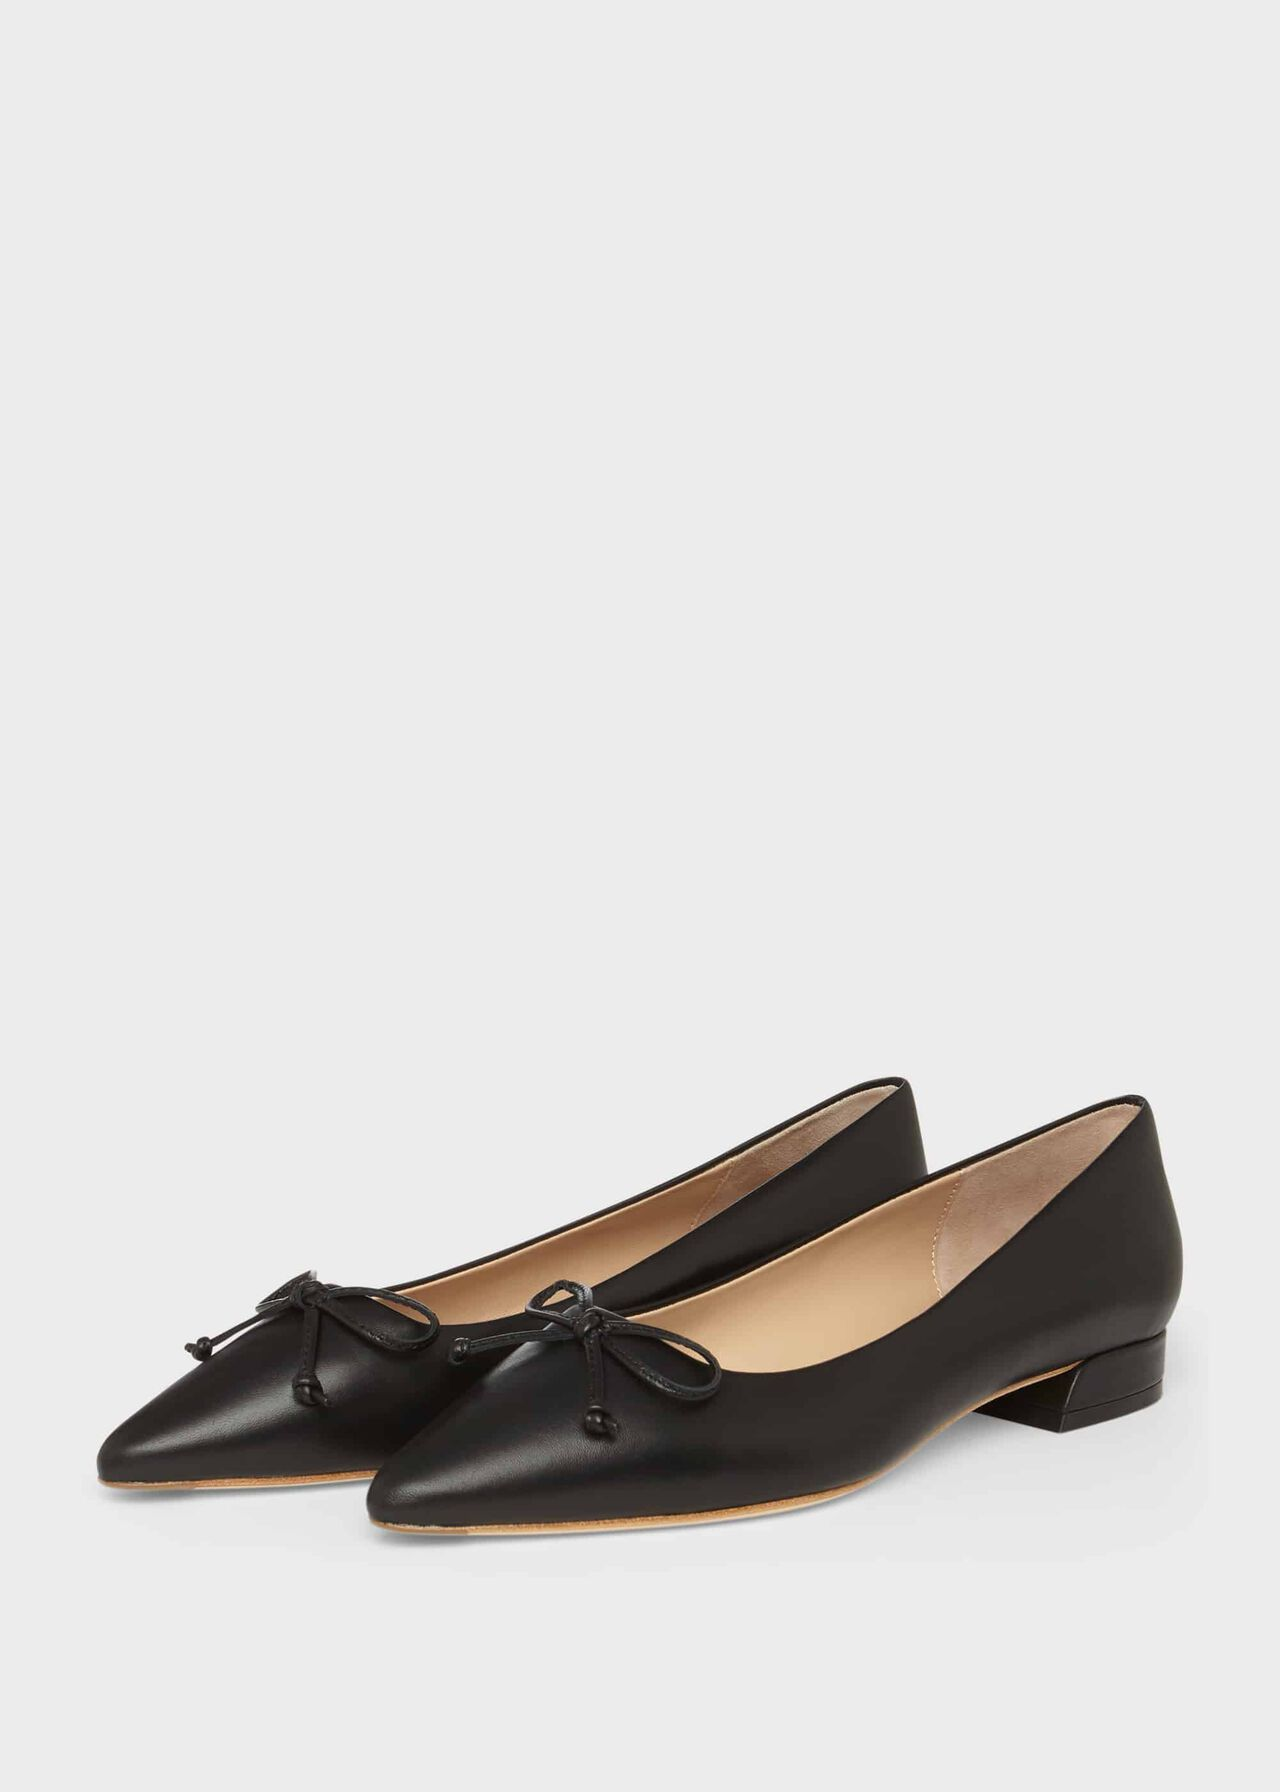 Kayley Leather Ballerinas Black